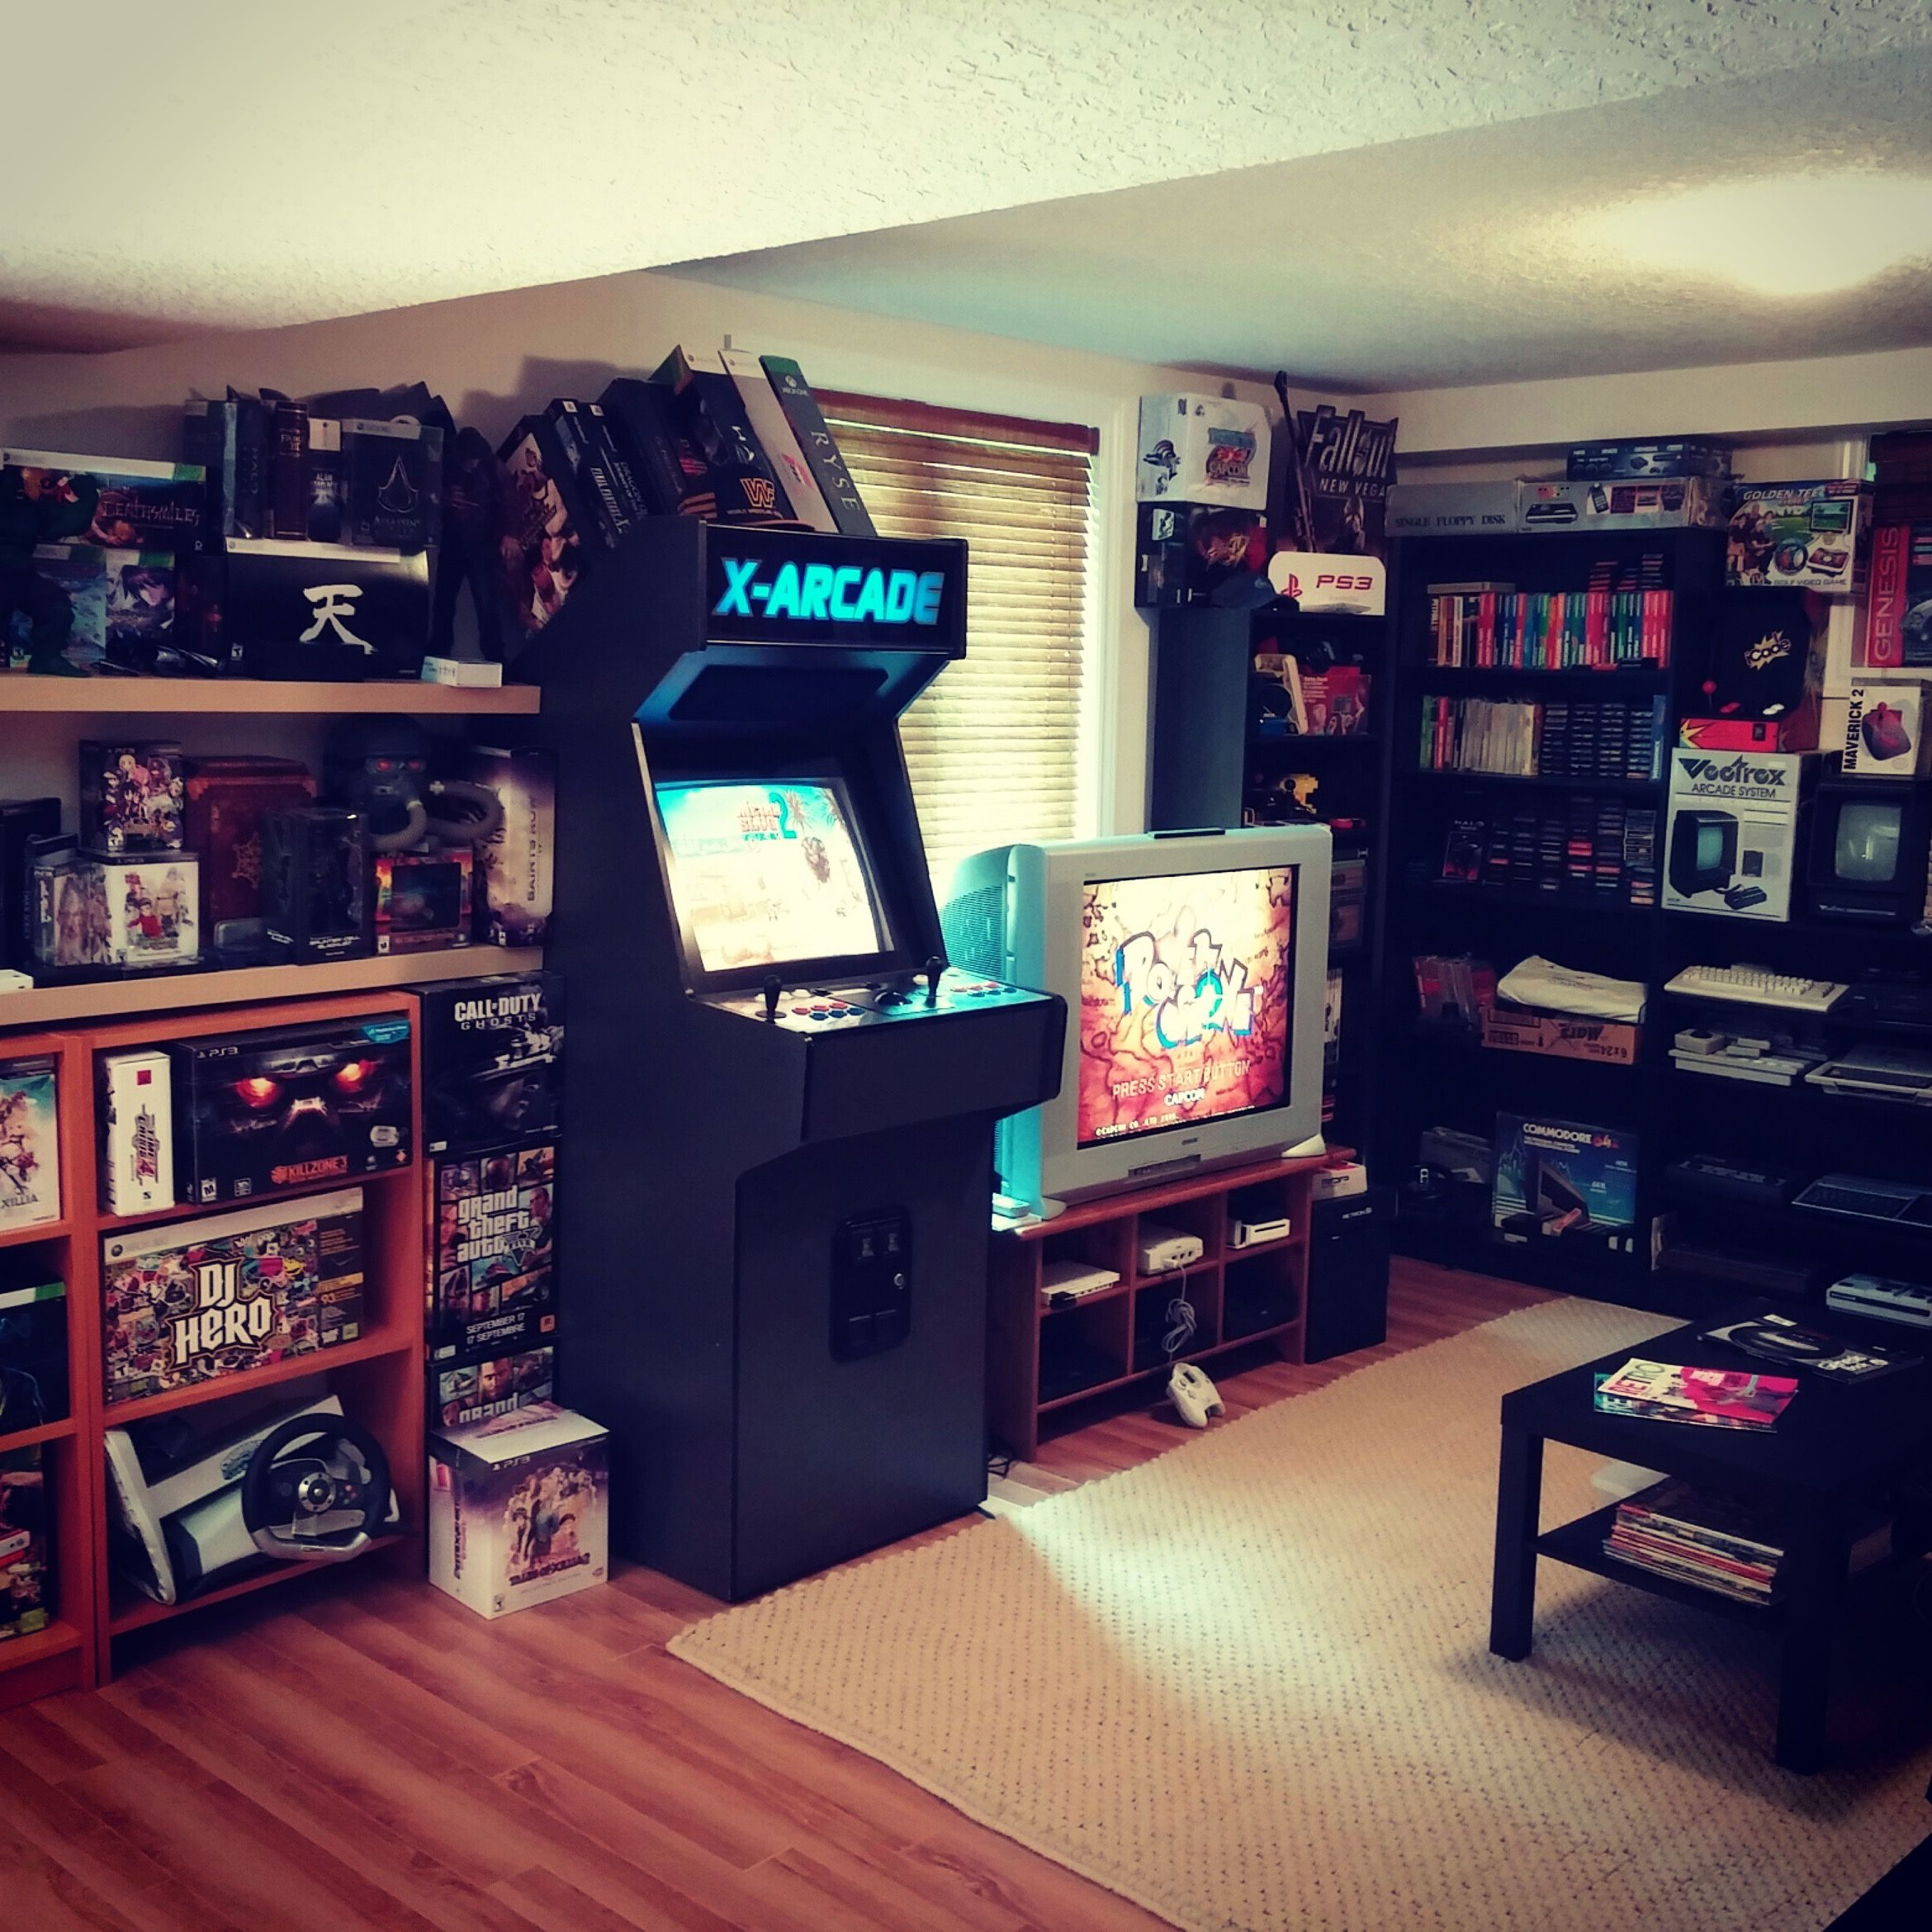 The Retro Gaming Area Of The Game Room Video Game Collection